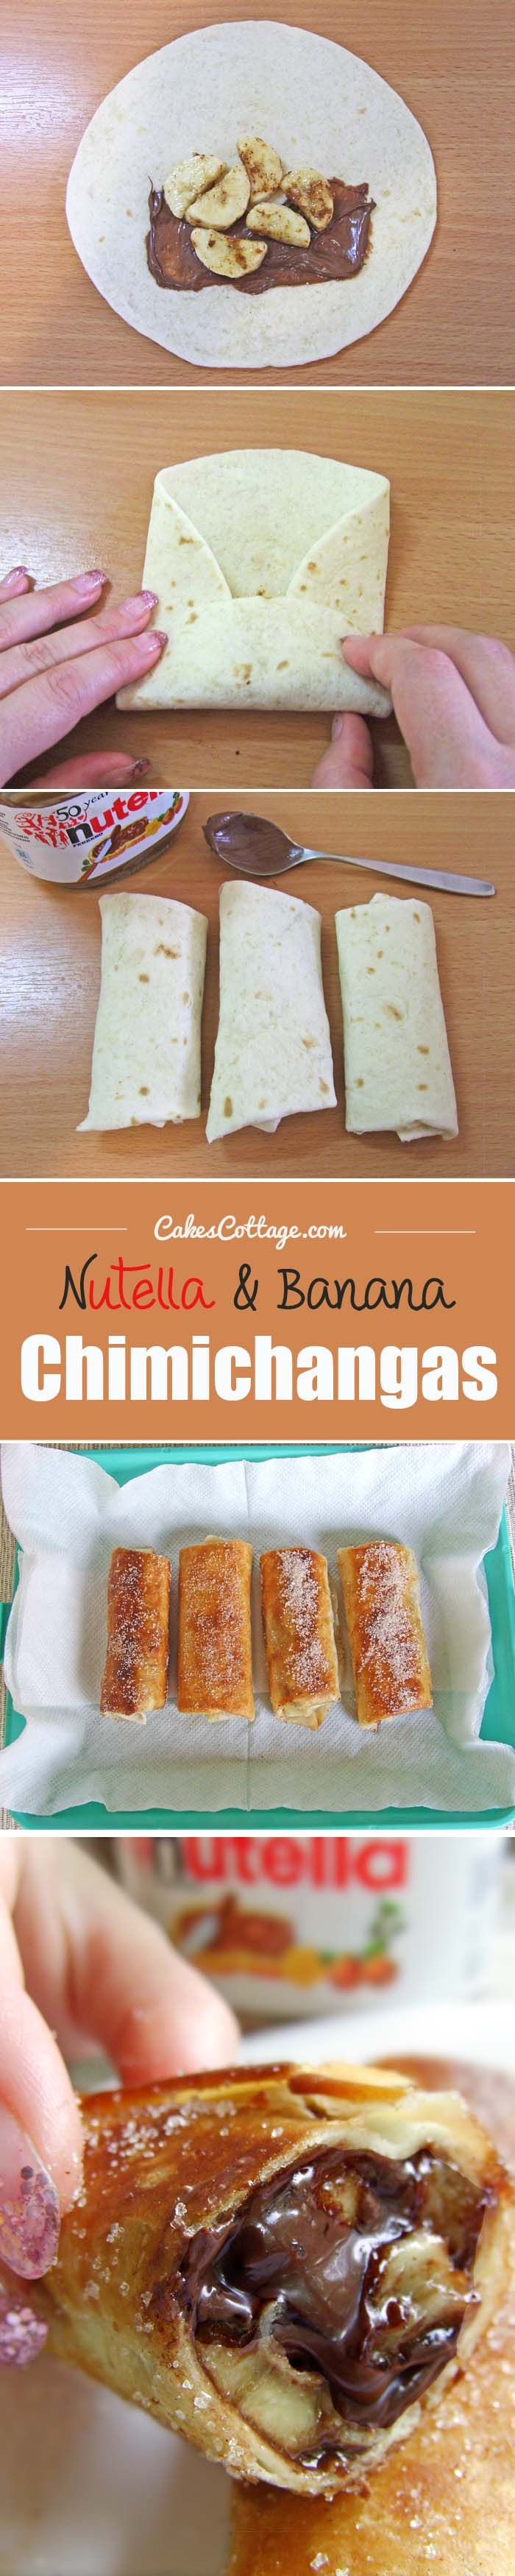 Nutella and Banana Chimichangas | www.cakescottage.com | #recipes #nutella #chimichangas